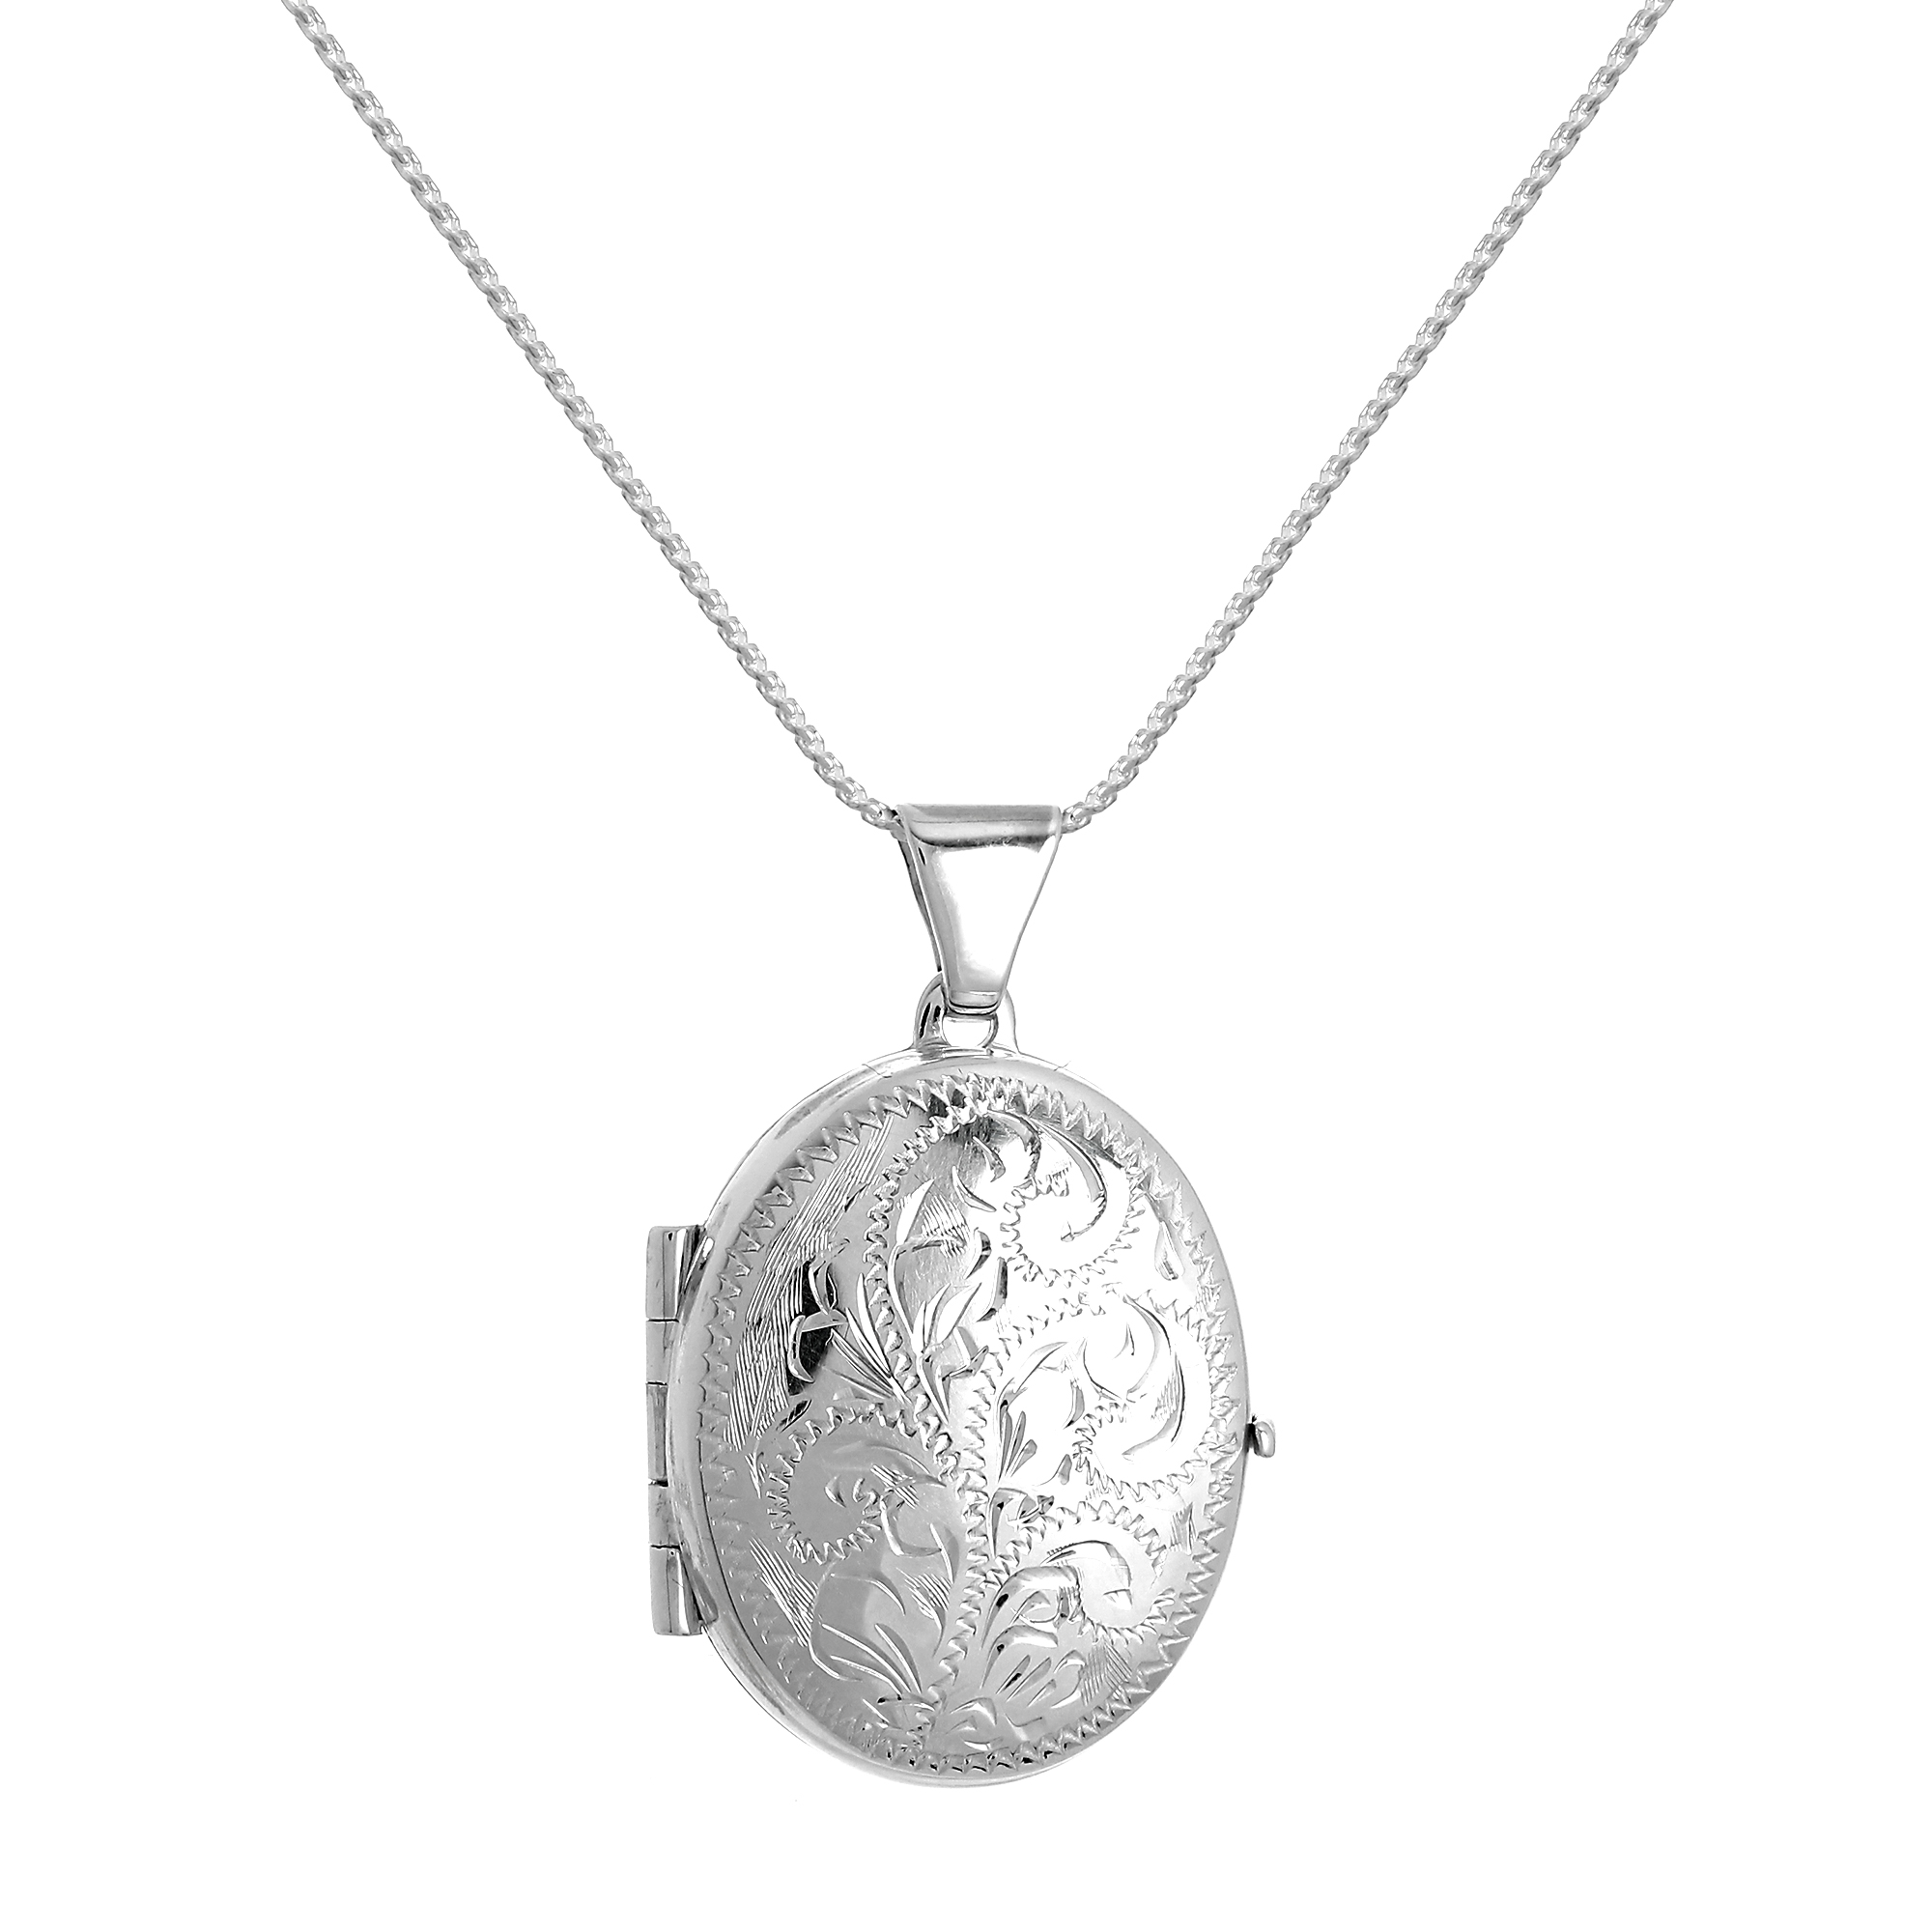 An image of Sterling Silver Engraved Oval 4 Photo Family Locket on 14 Inch Chain